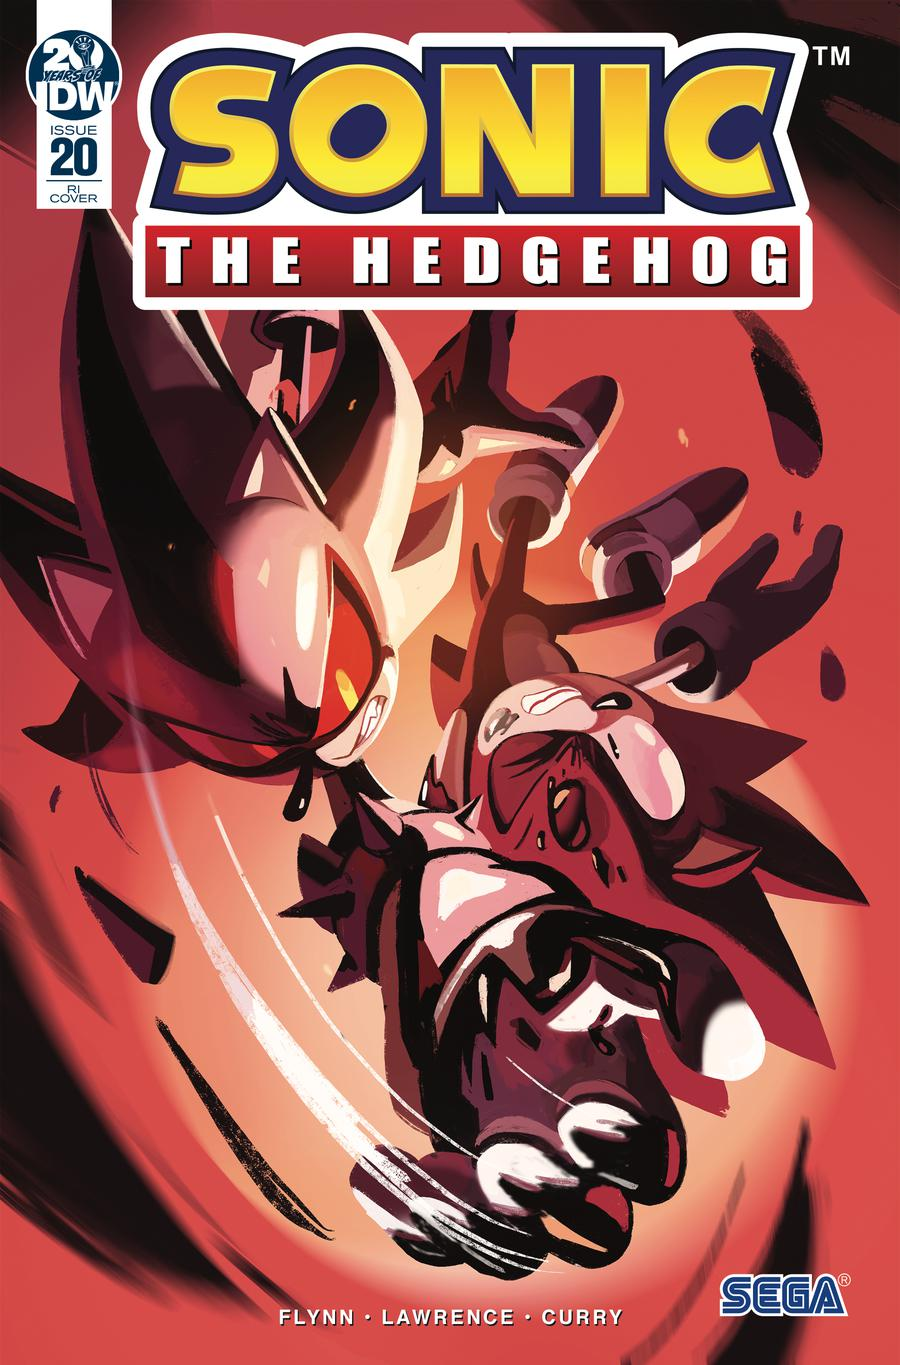 Sonic The Hedgehog Vol 3 #20 Cover C Incentive Nathalie Fourdraine Variant Cover